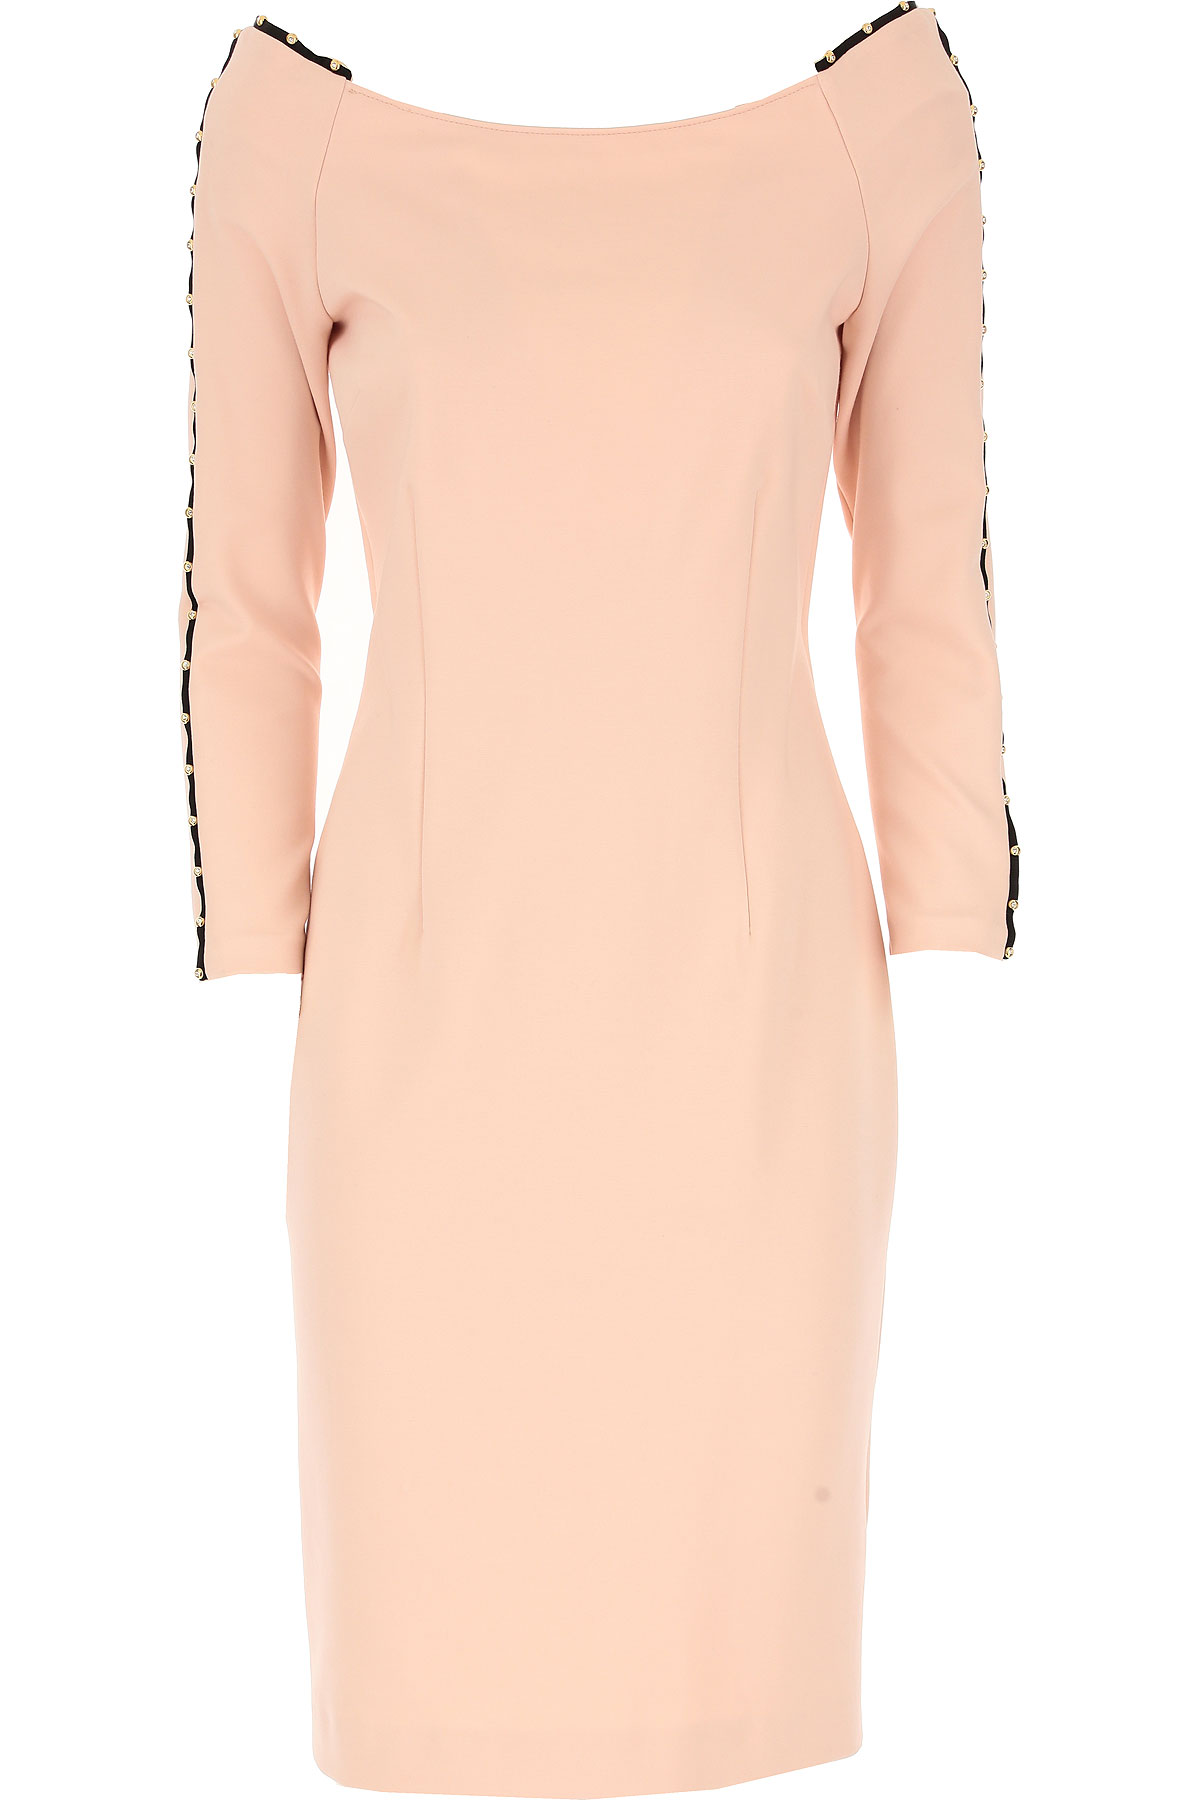 Roberto Cavalli Dress for Women, Evening Cocktail Party On Sale, Rose, Viscose, 2017, 4 6 USA-459524